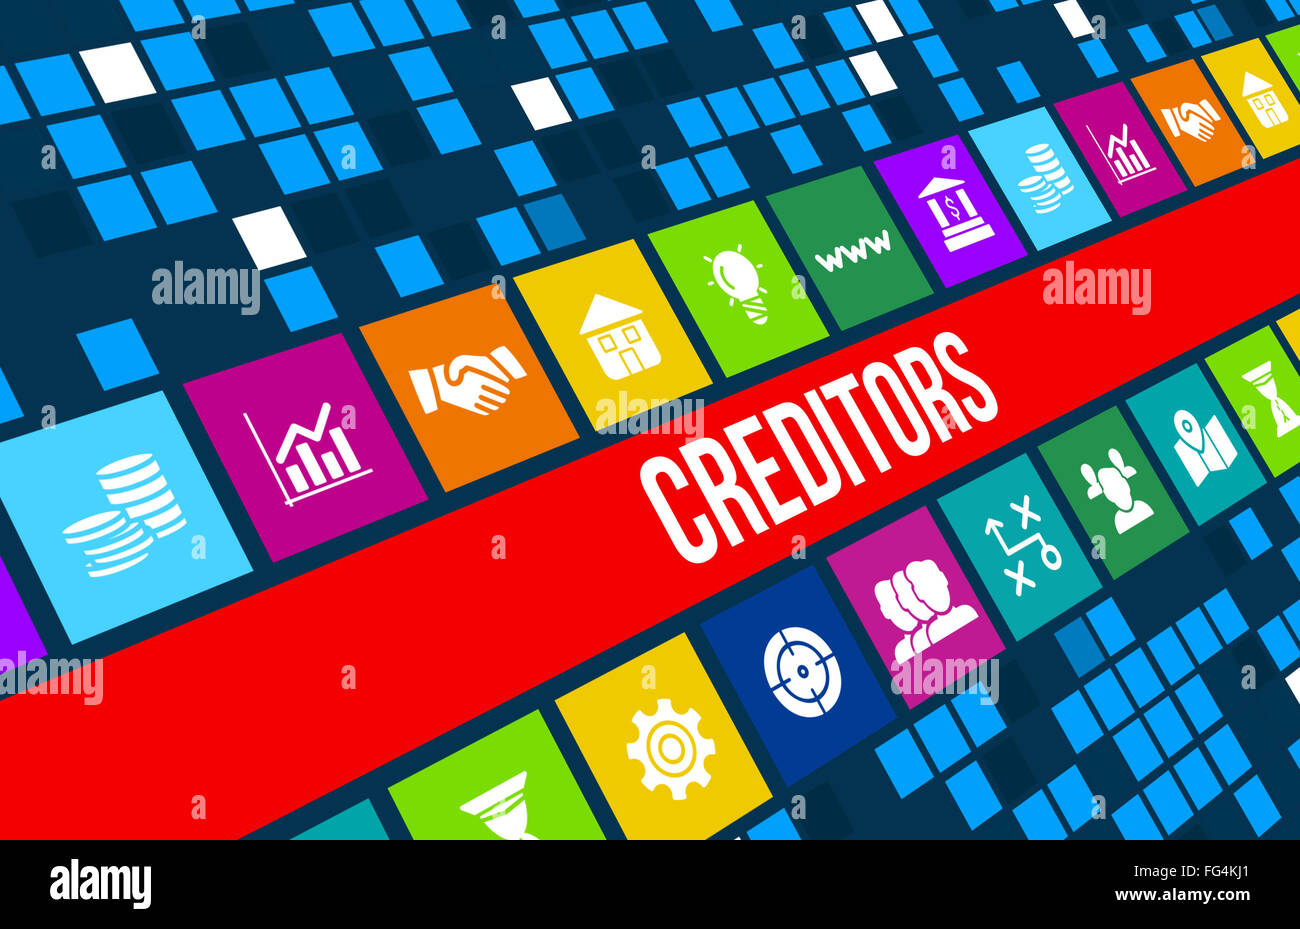 Creditors concept image with business icons and copyspace. - Stock Image